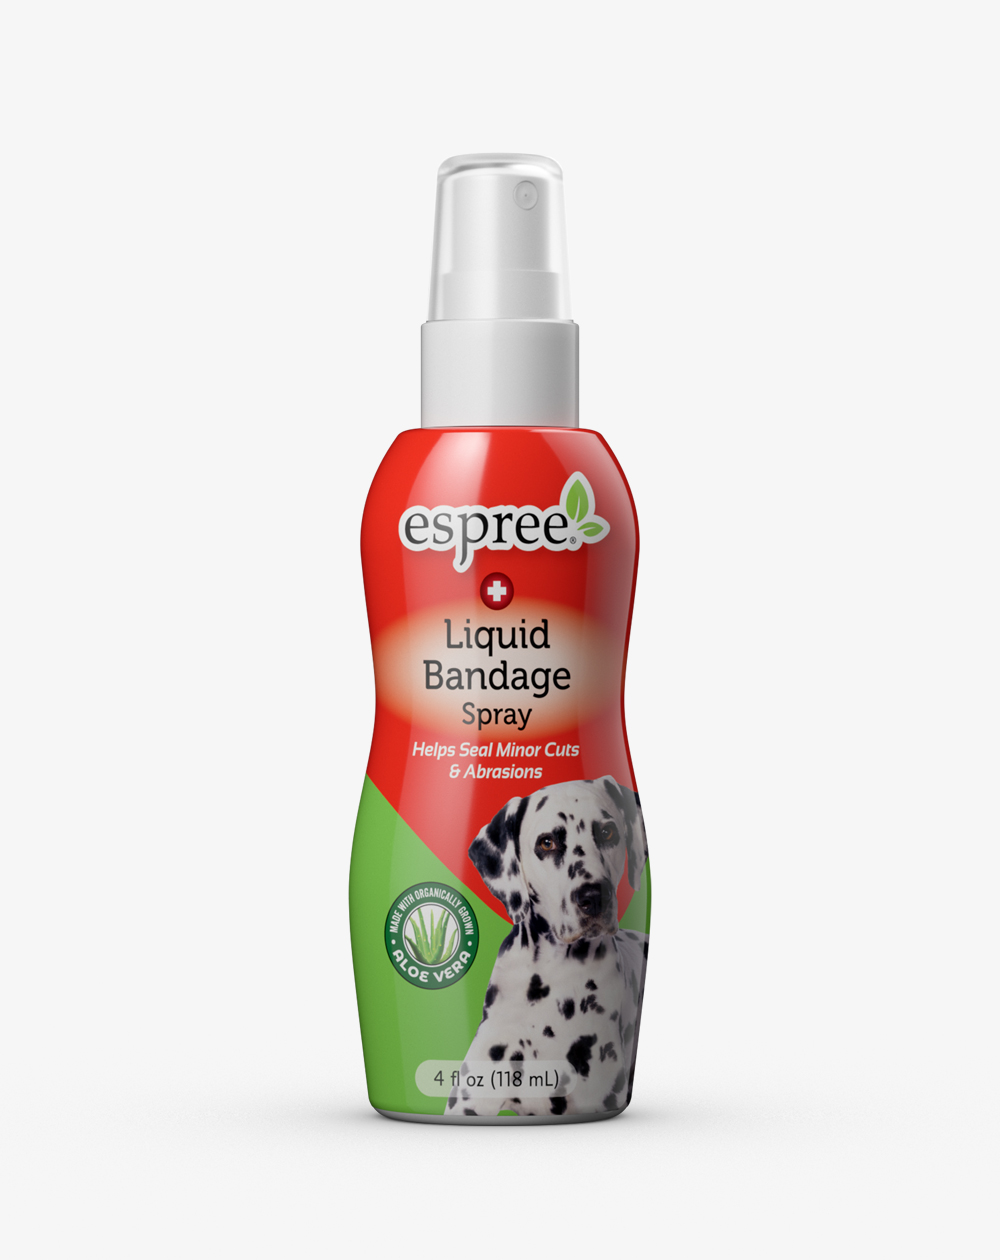 Espree Liquid Bandage Spray for Dogs